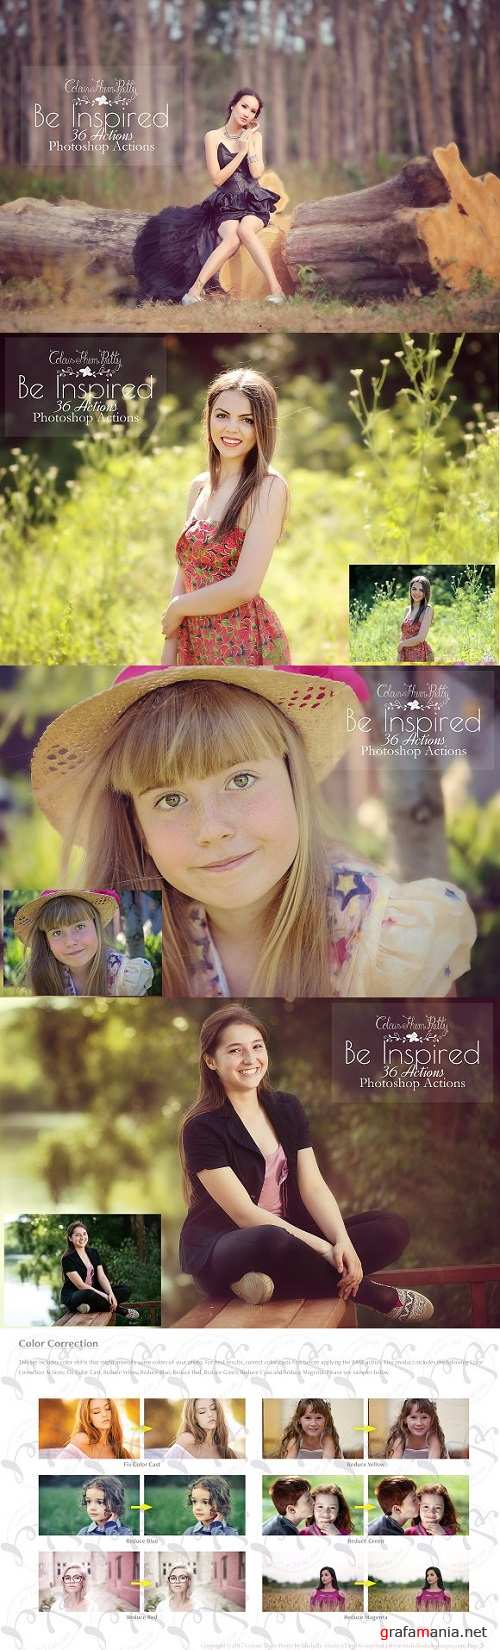 Be Inspired Actions for Photoshop 2160512